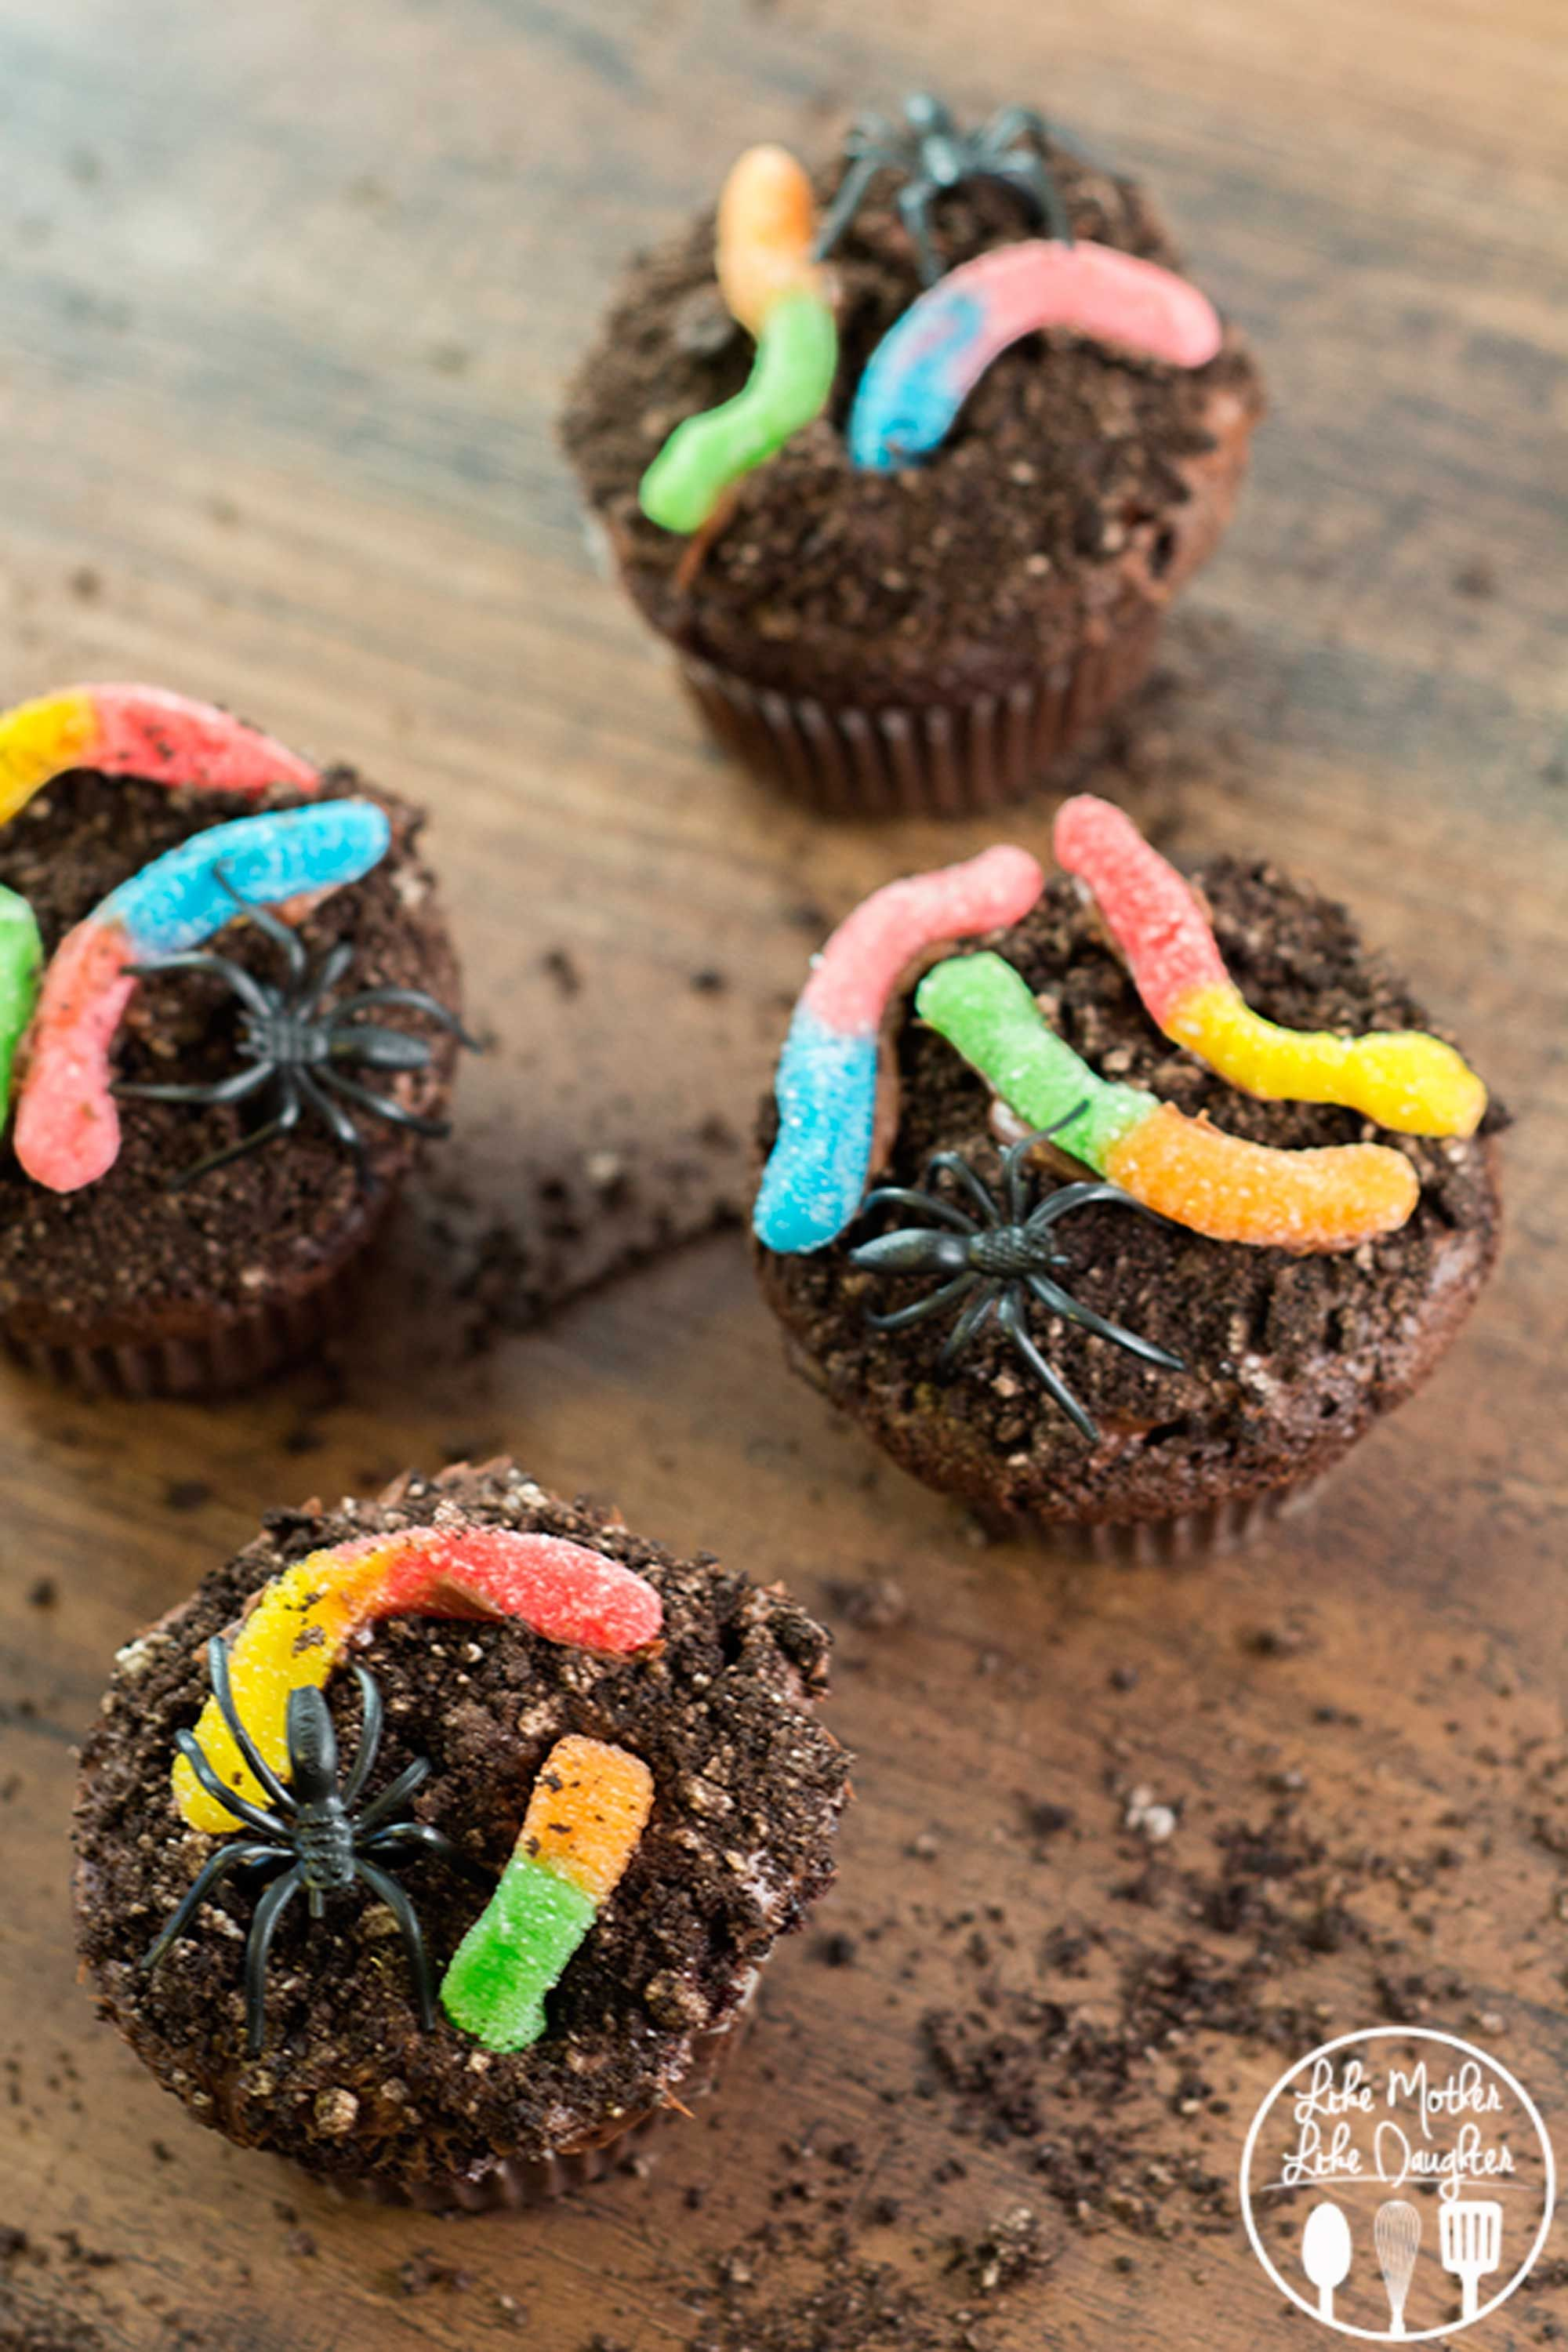 55 Best Halloween Cupcake Ideas For A Scary Cute Dessert Table